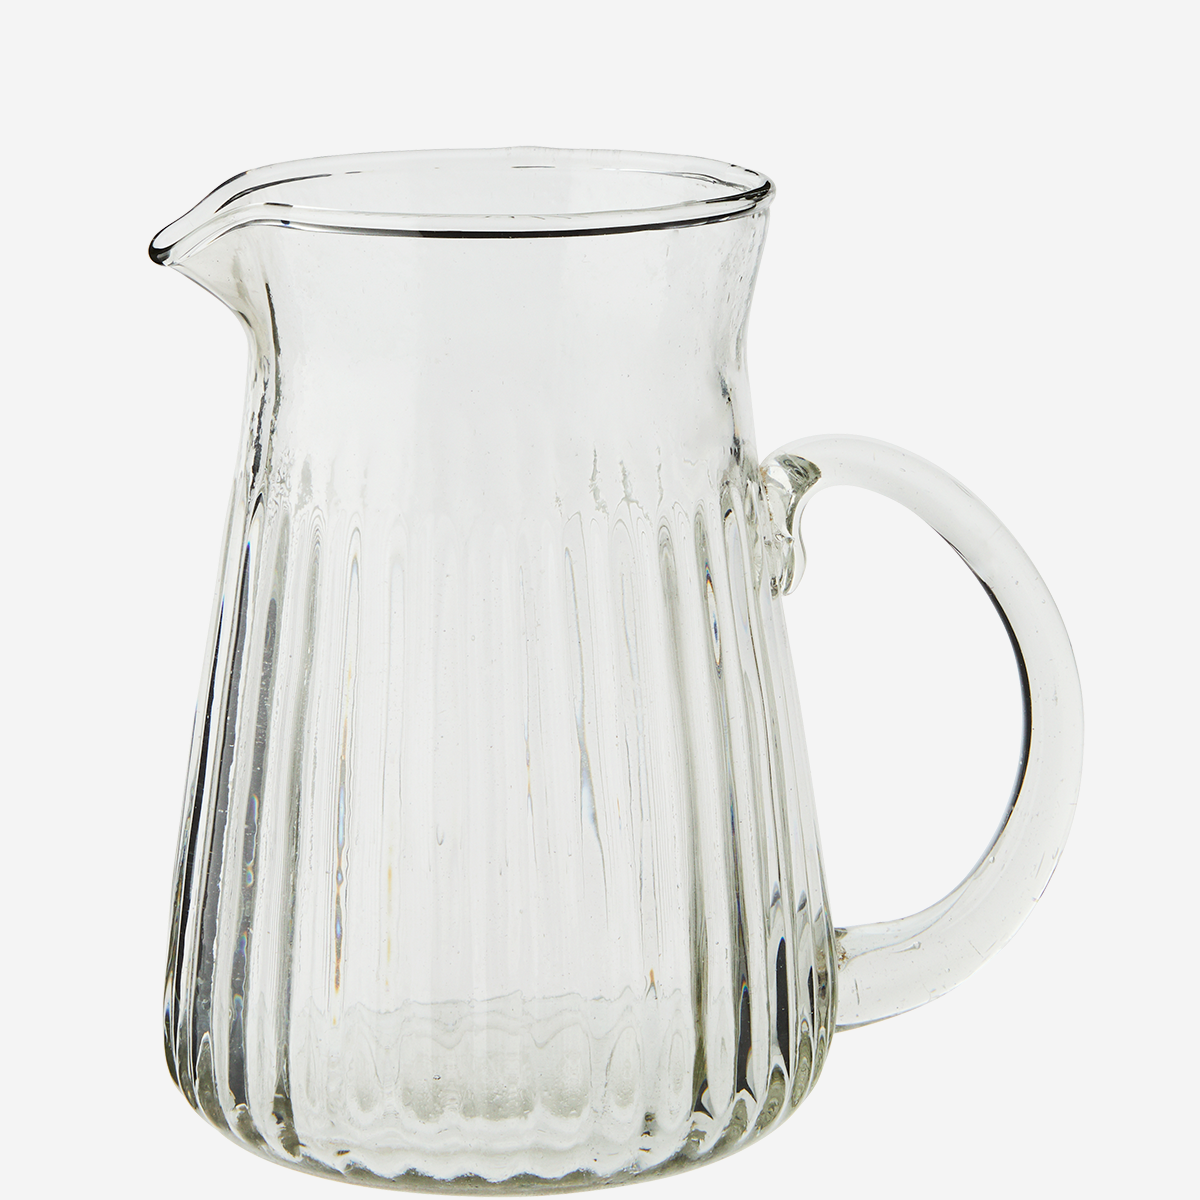 Glass Jug with Grooves